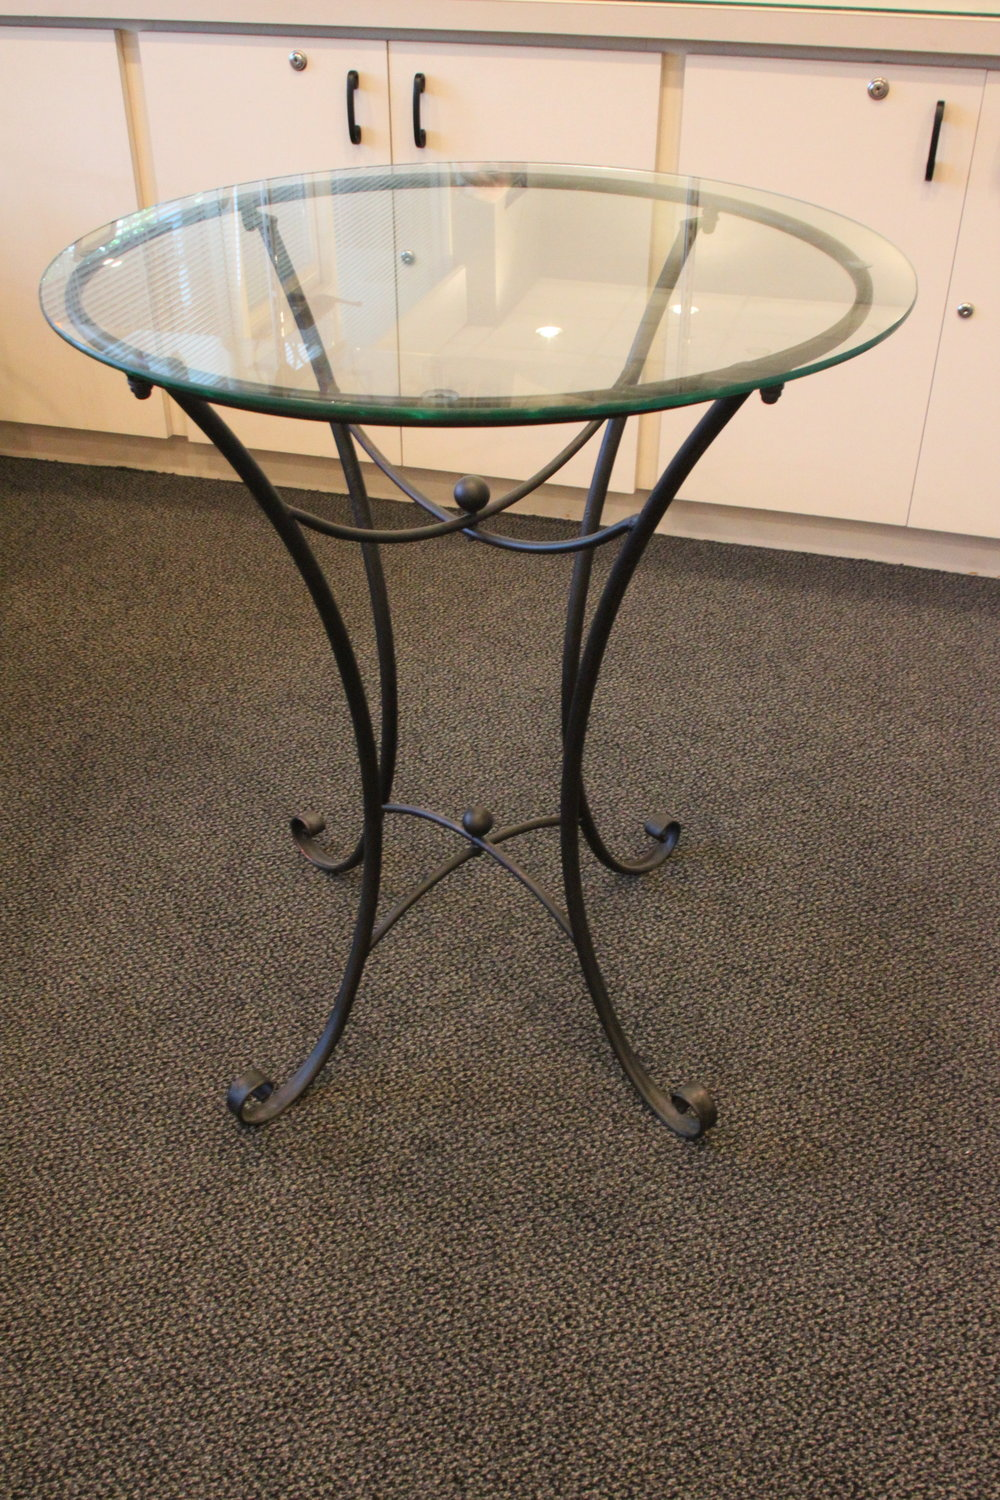 Metal & Glass Round Table - $15 (each)    2 Available